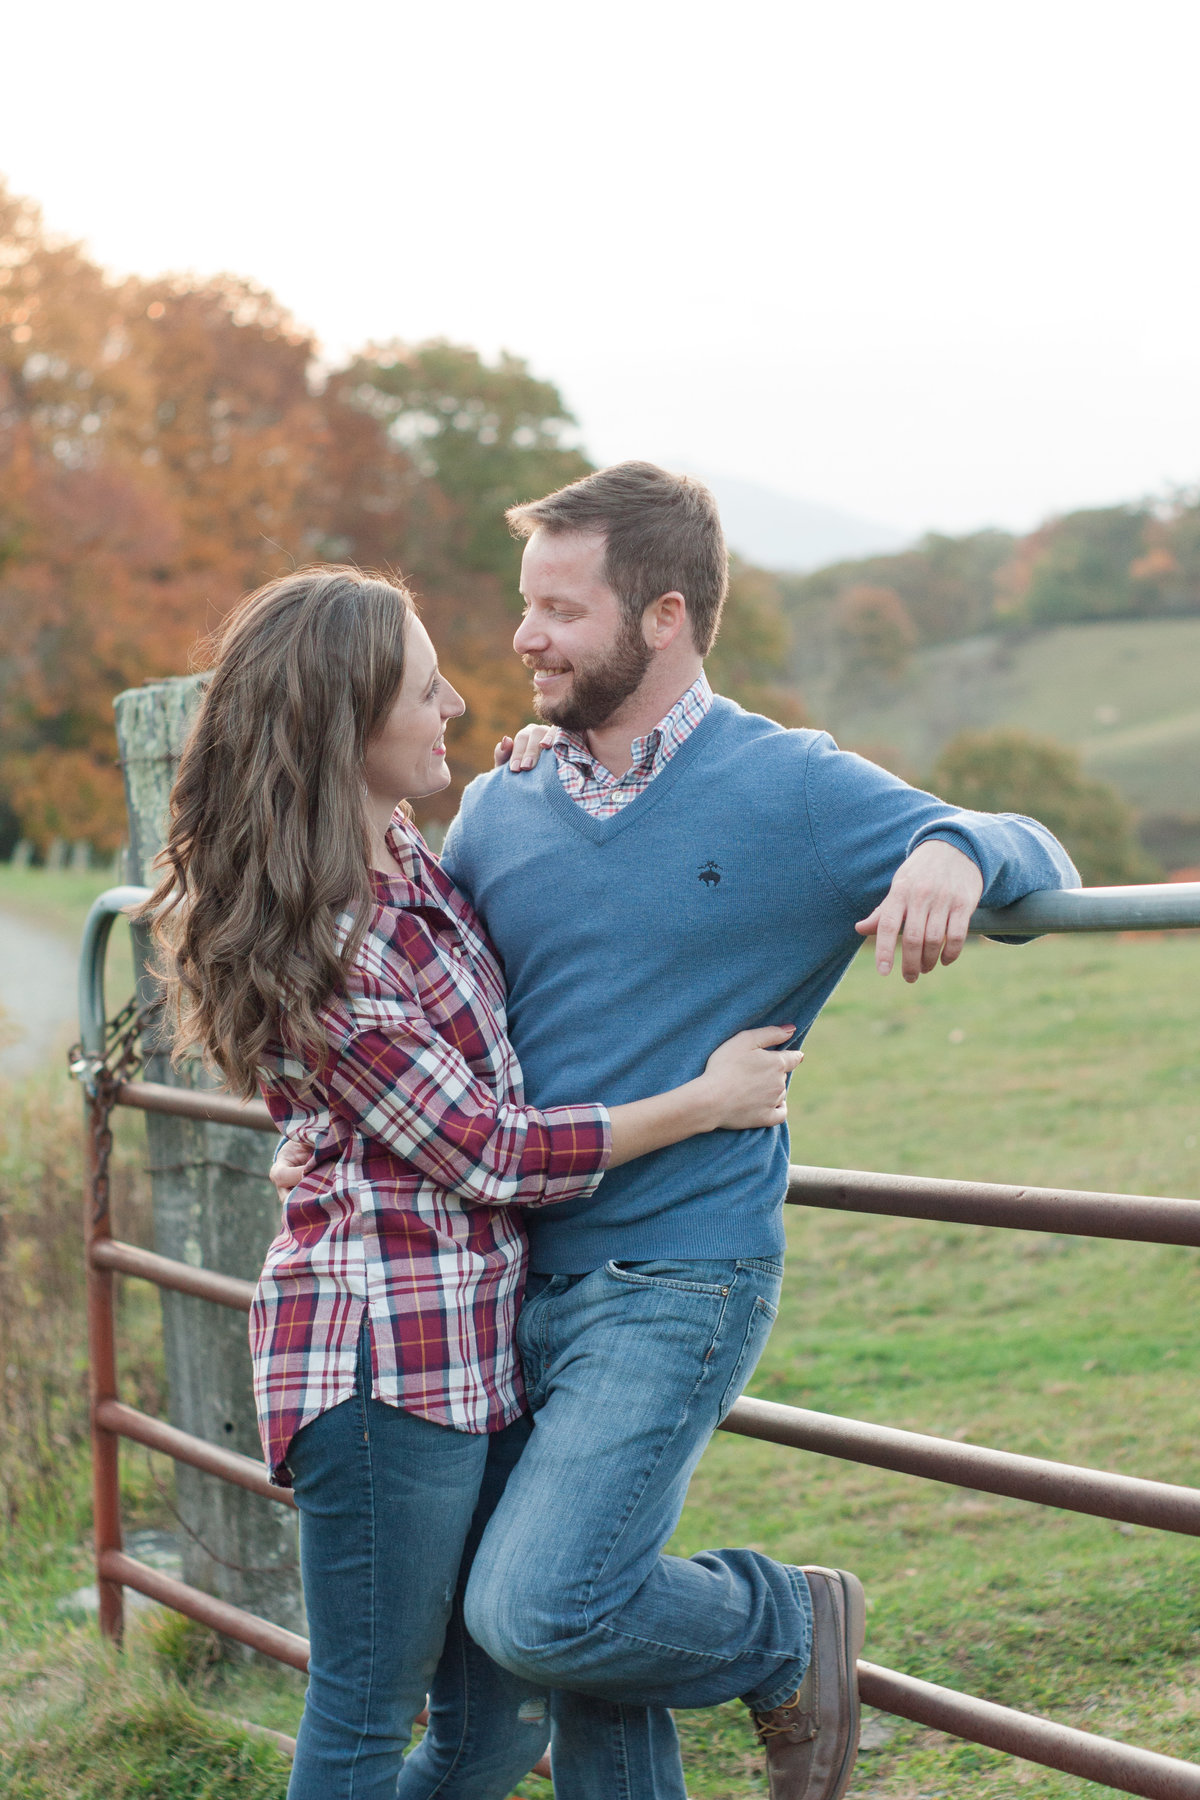 Moses Cone Manor Engagement Adventure on the Blue Ridge Parkway photographed by Boone Photographer Wayfaring Wanderer.